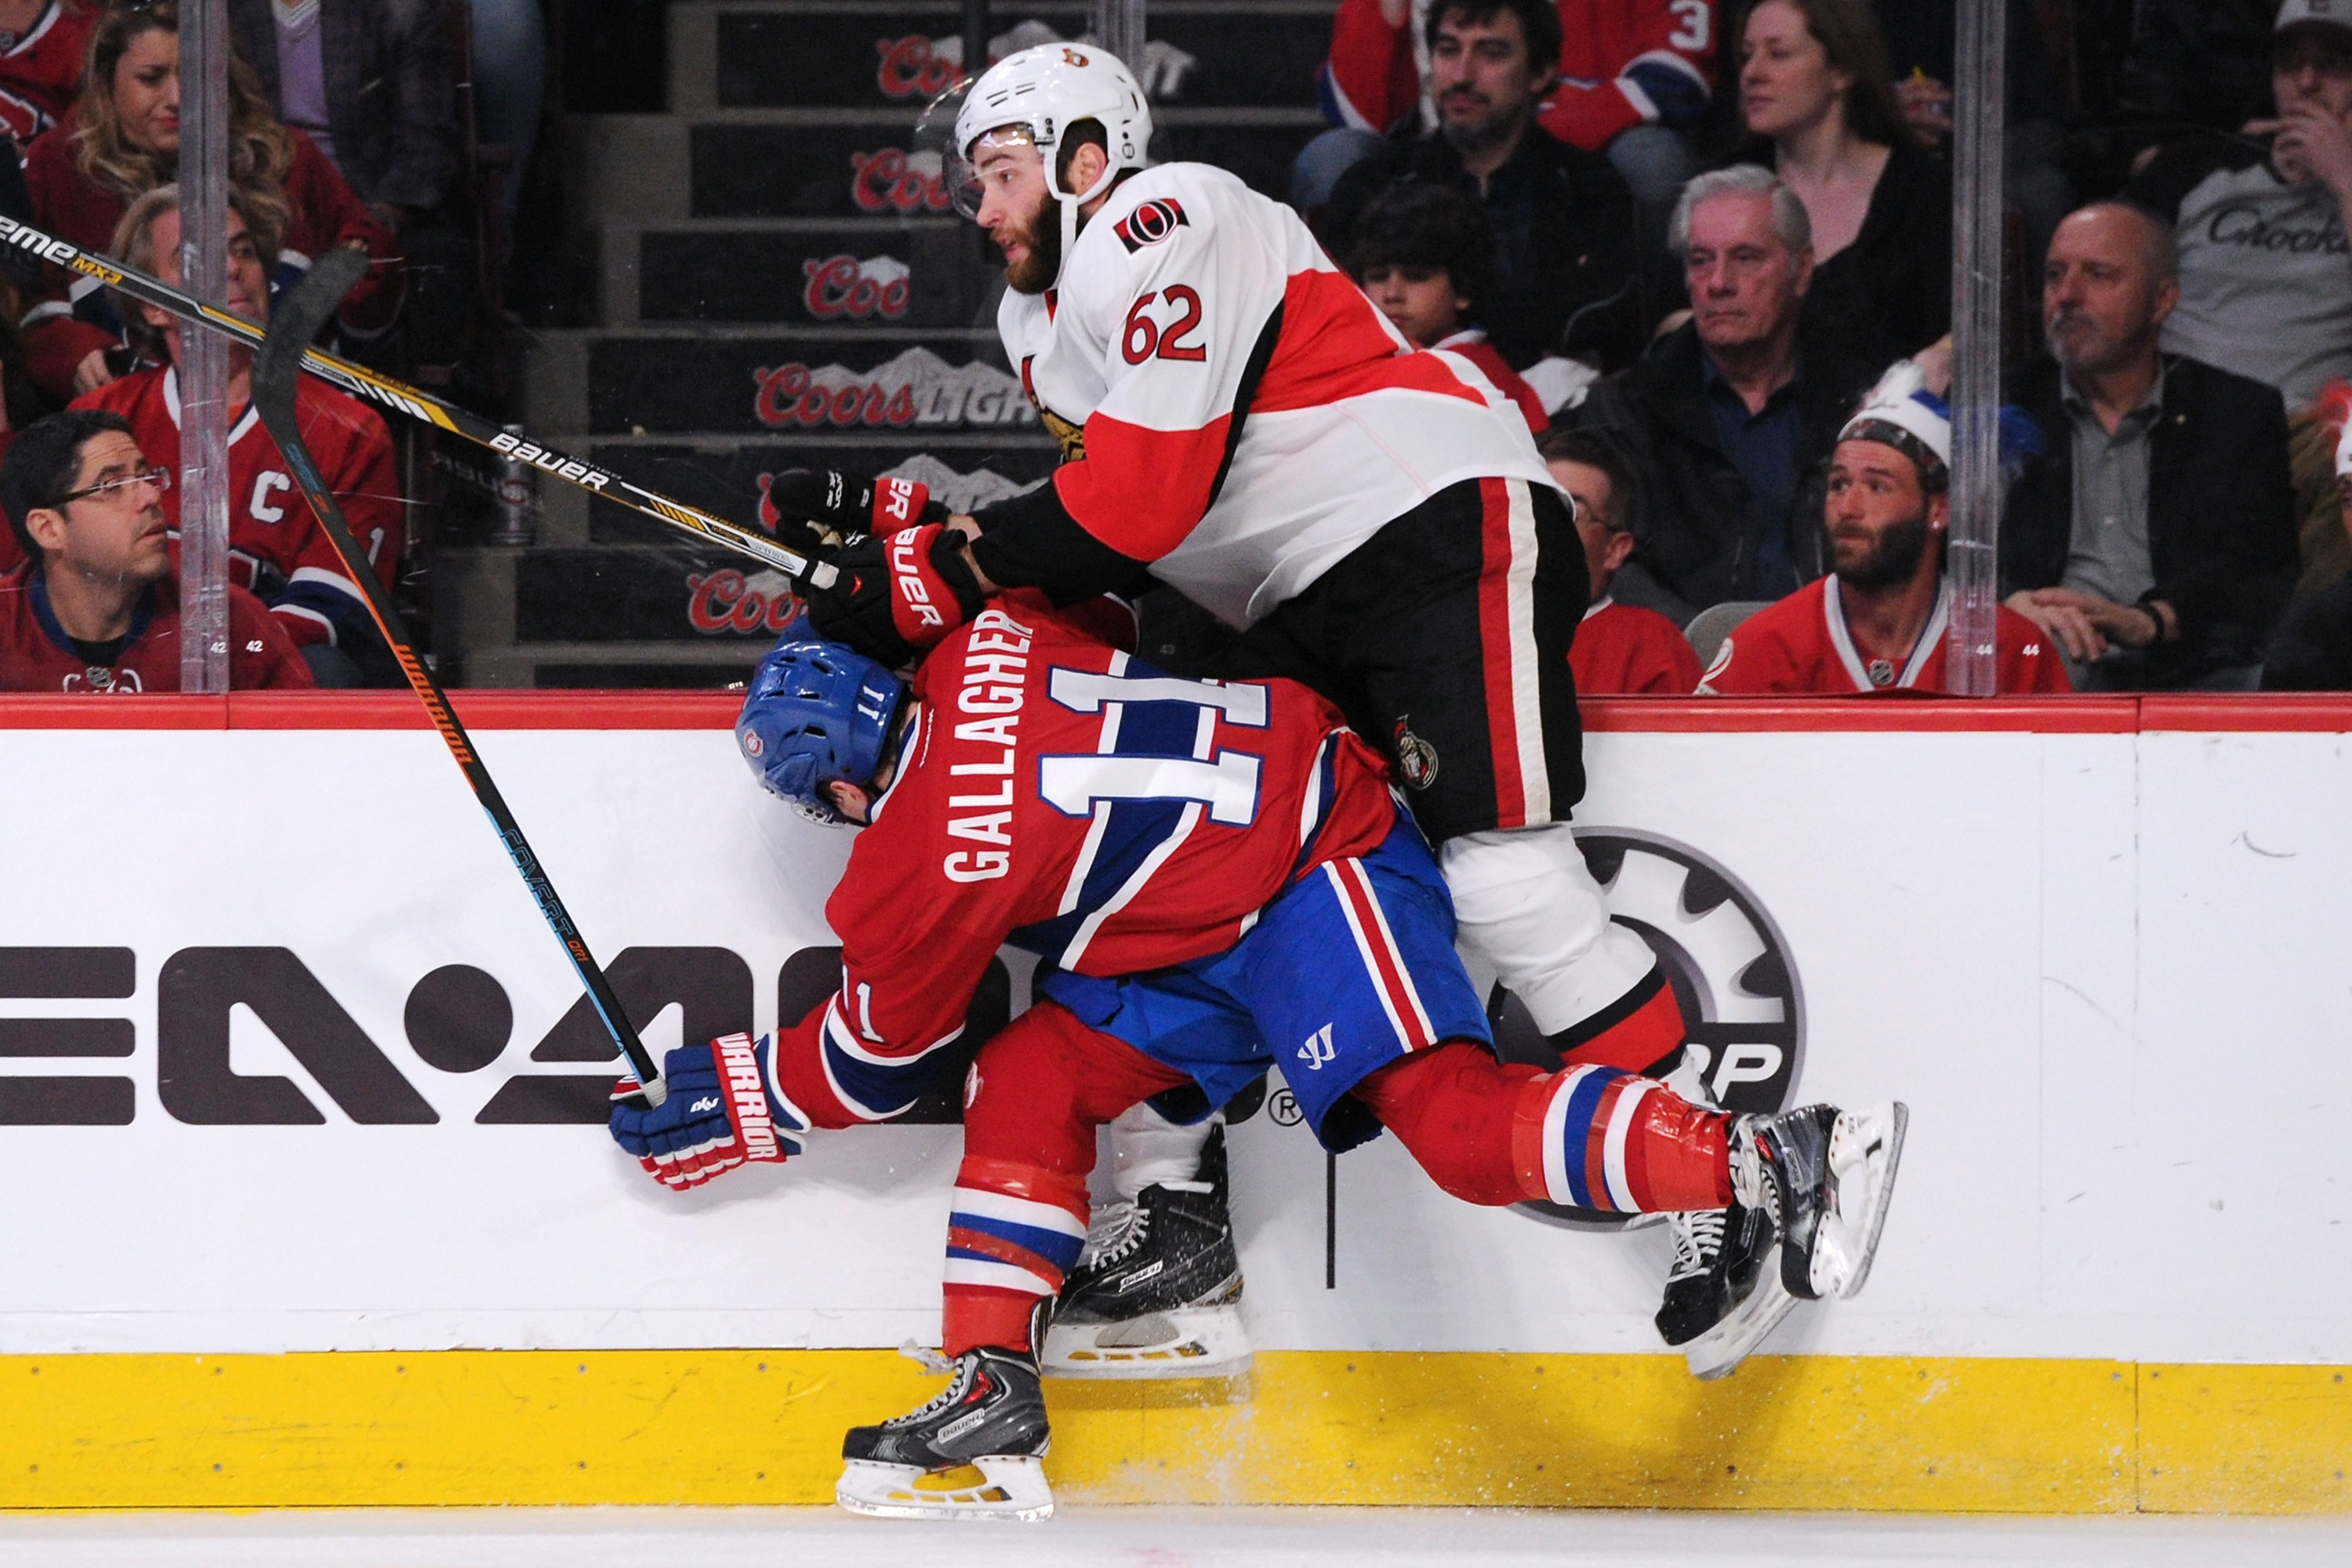 Two players that had a key role in the 3-2 OT victory by the Habs over the Sens.